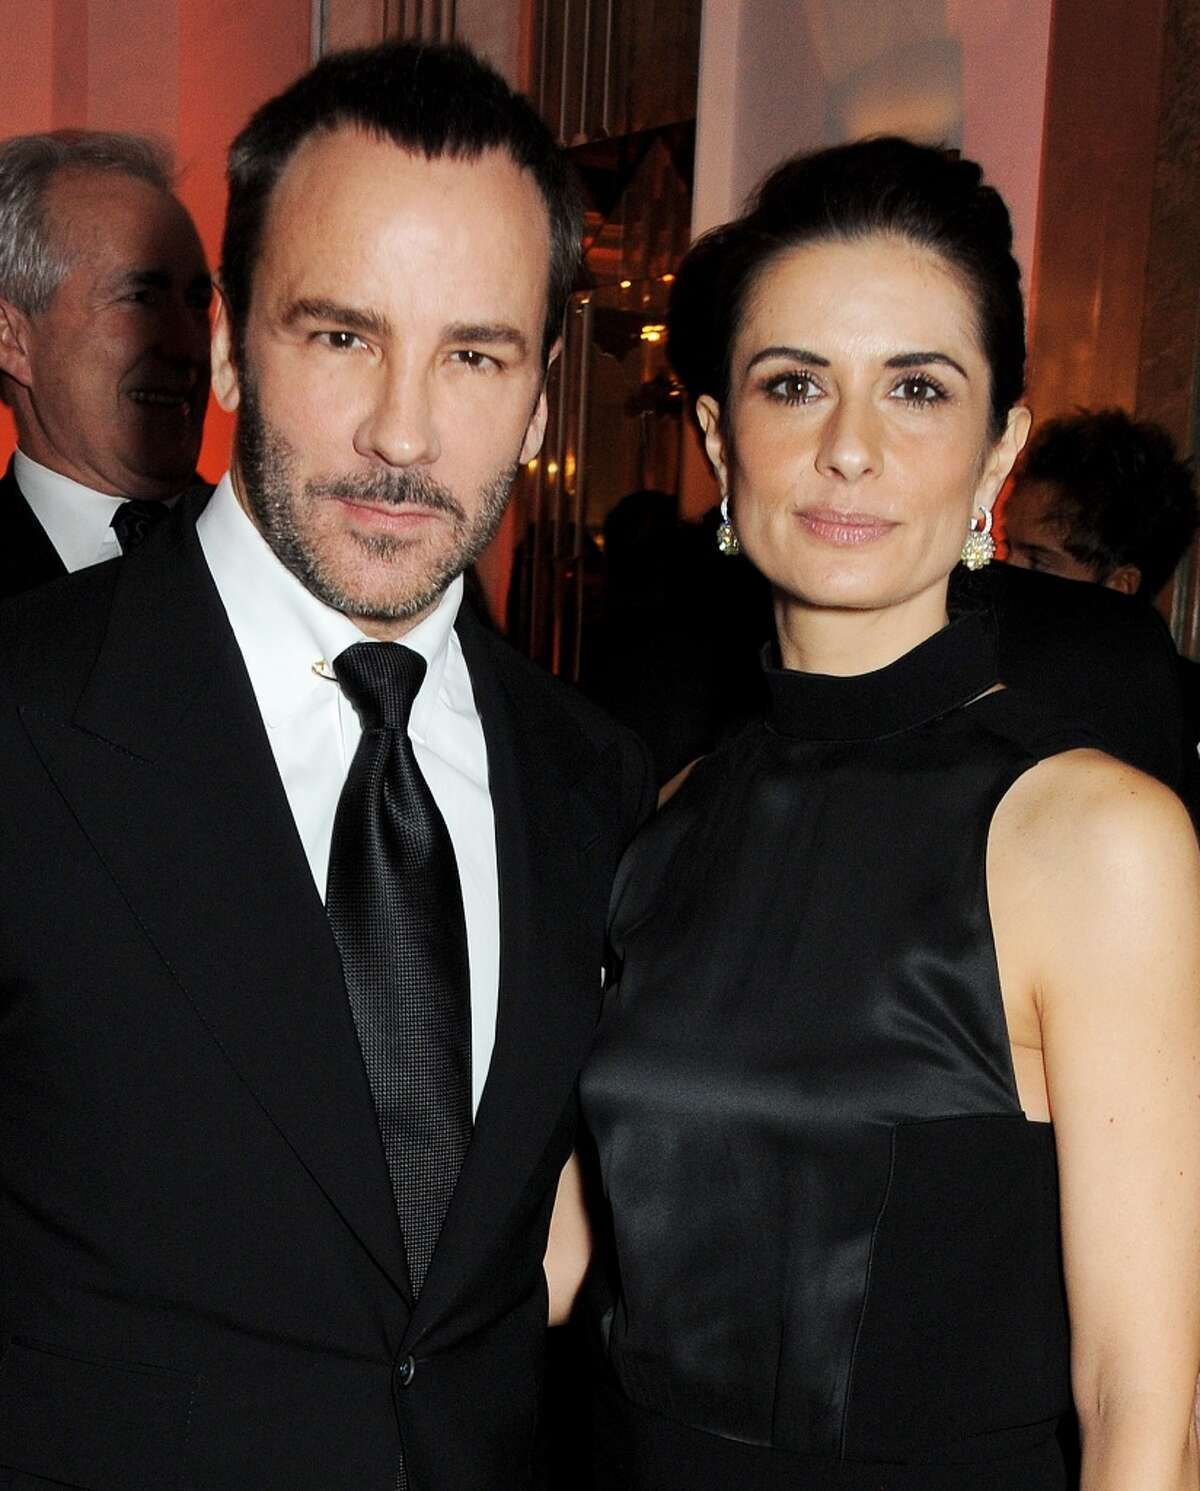 Tom Ford (L) and Livia Firth arrive at the Harper's Bazaar Women of the Year awards at Claridge's Hotel on November 5, 2013 in London, England. (Photo by David M. Benett/Getty Images)